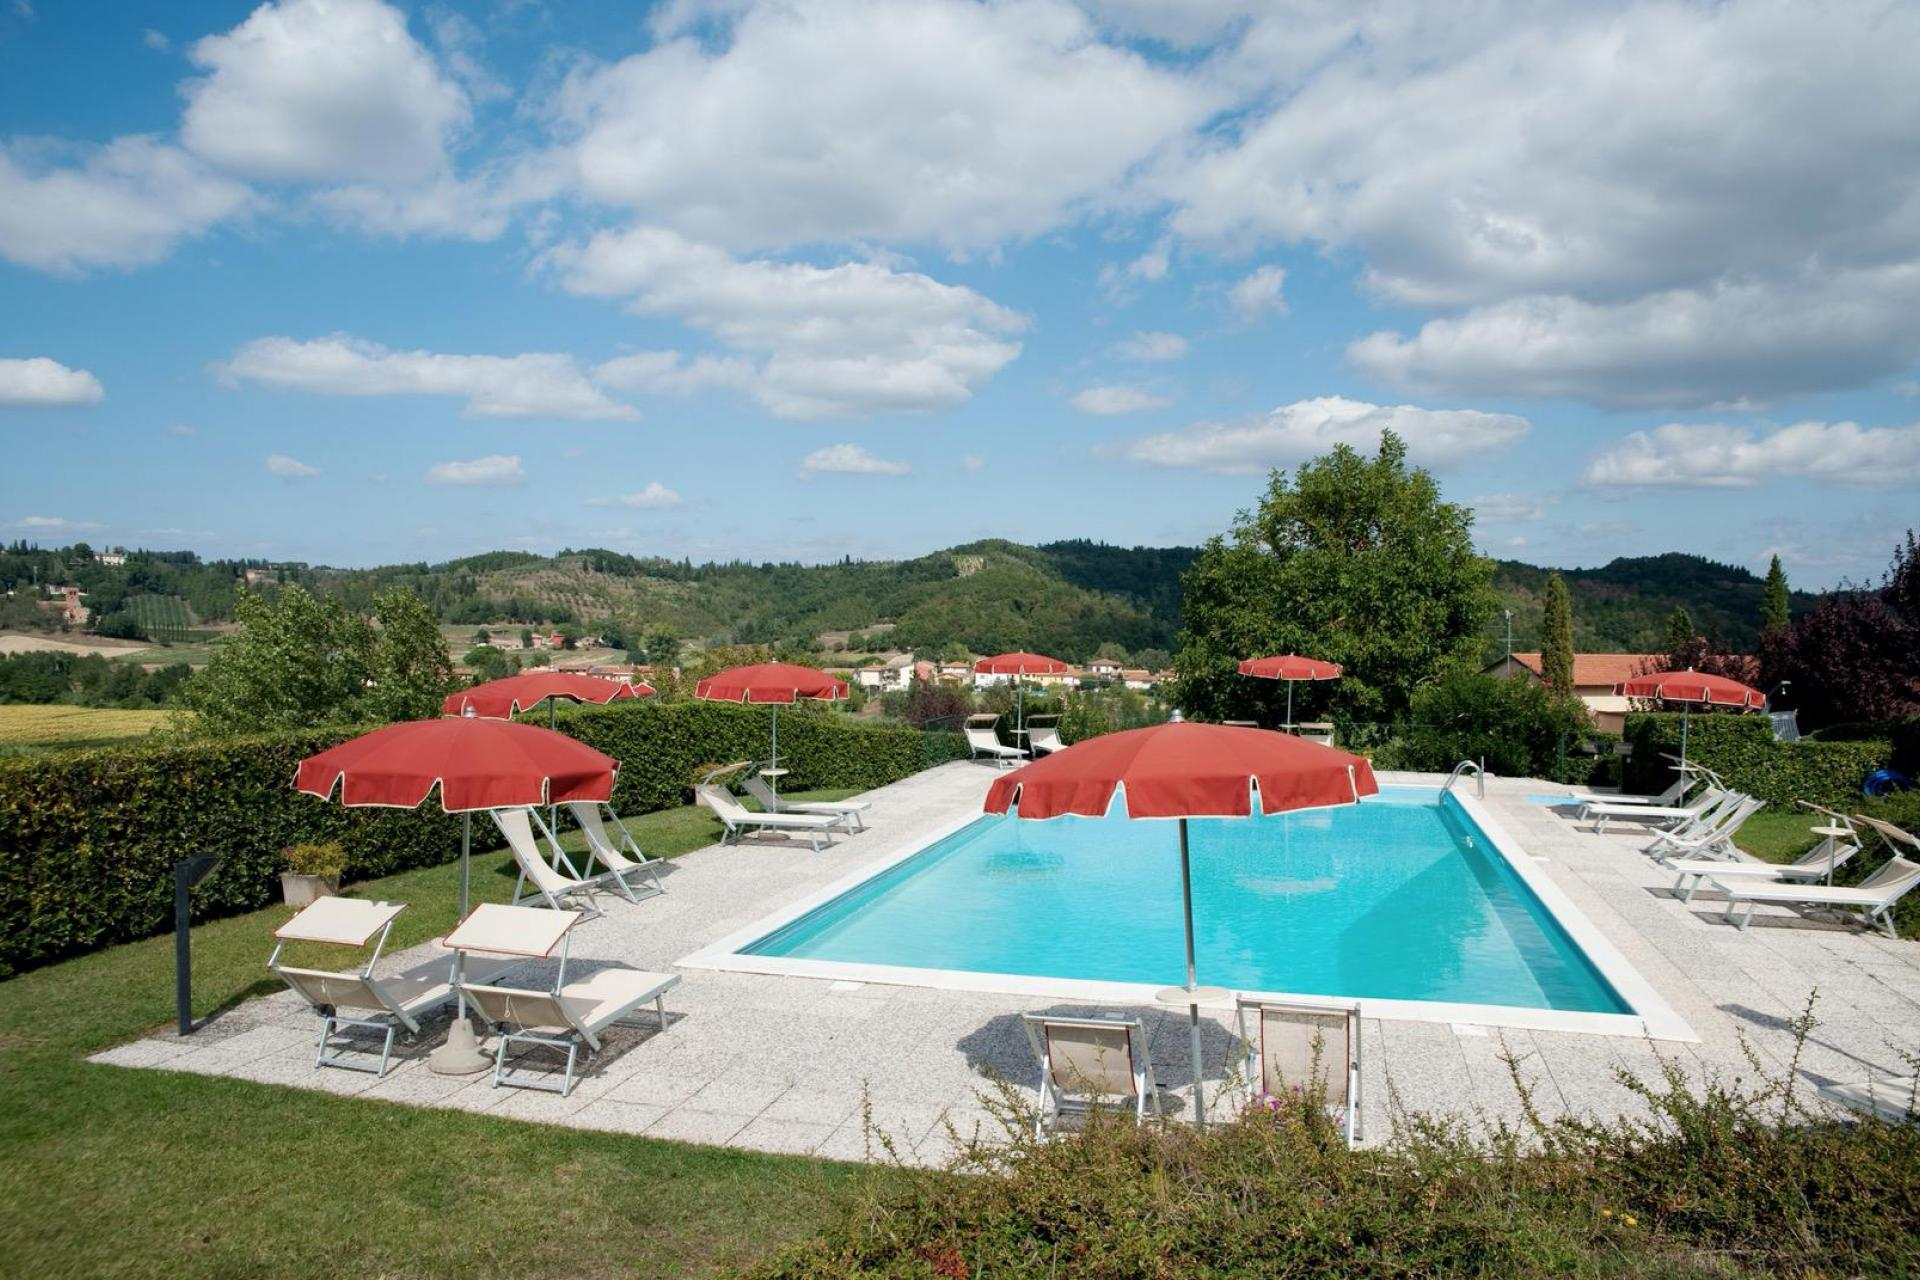 5. Agriturismo with children's pool and playground